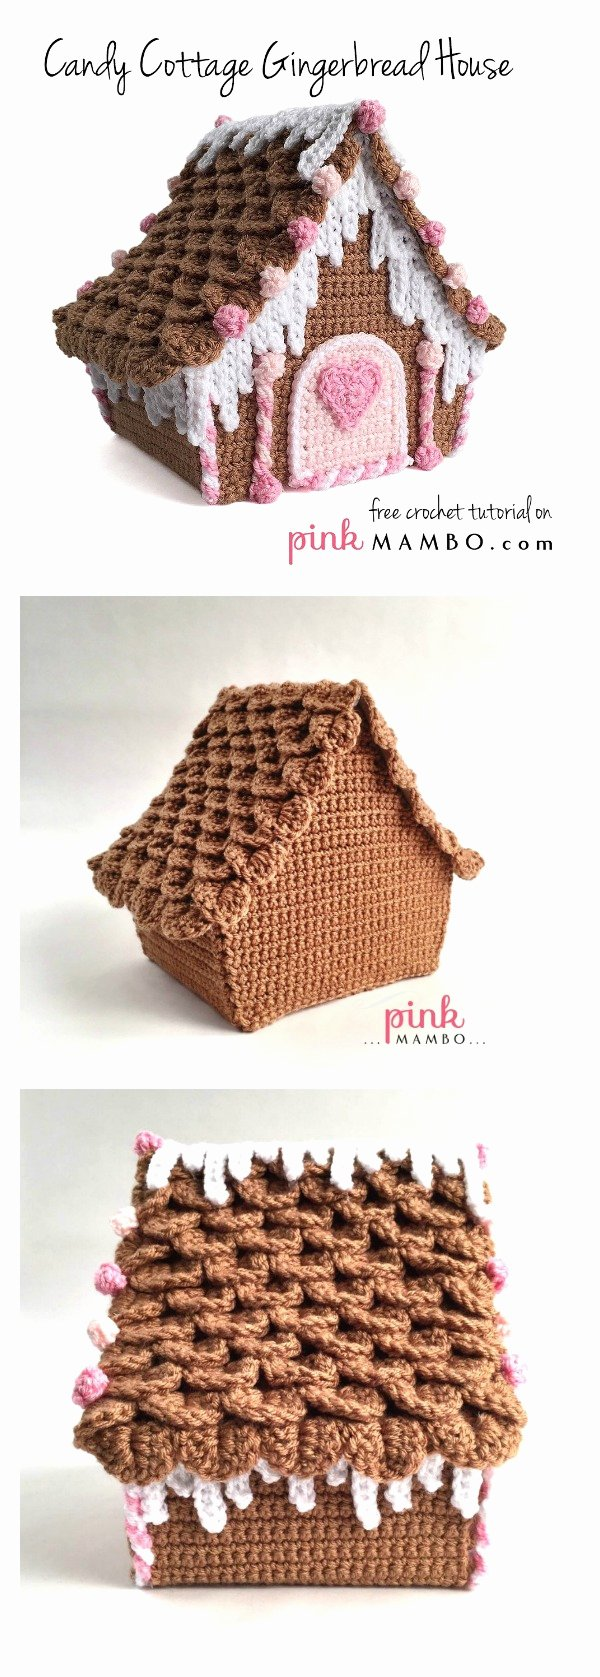 Free Gingerbread House Patterns New Amazing Candy Cottage Gingerbread House Free Crochet Pattern